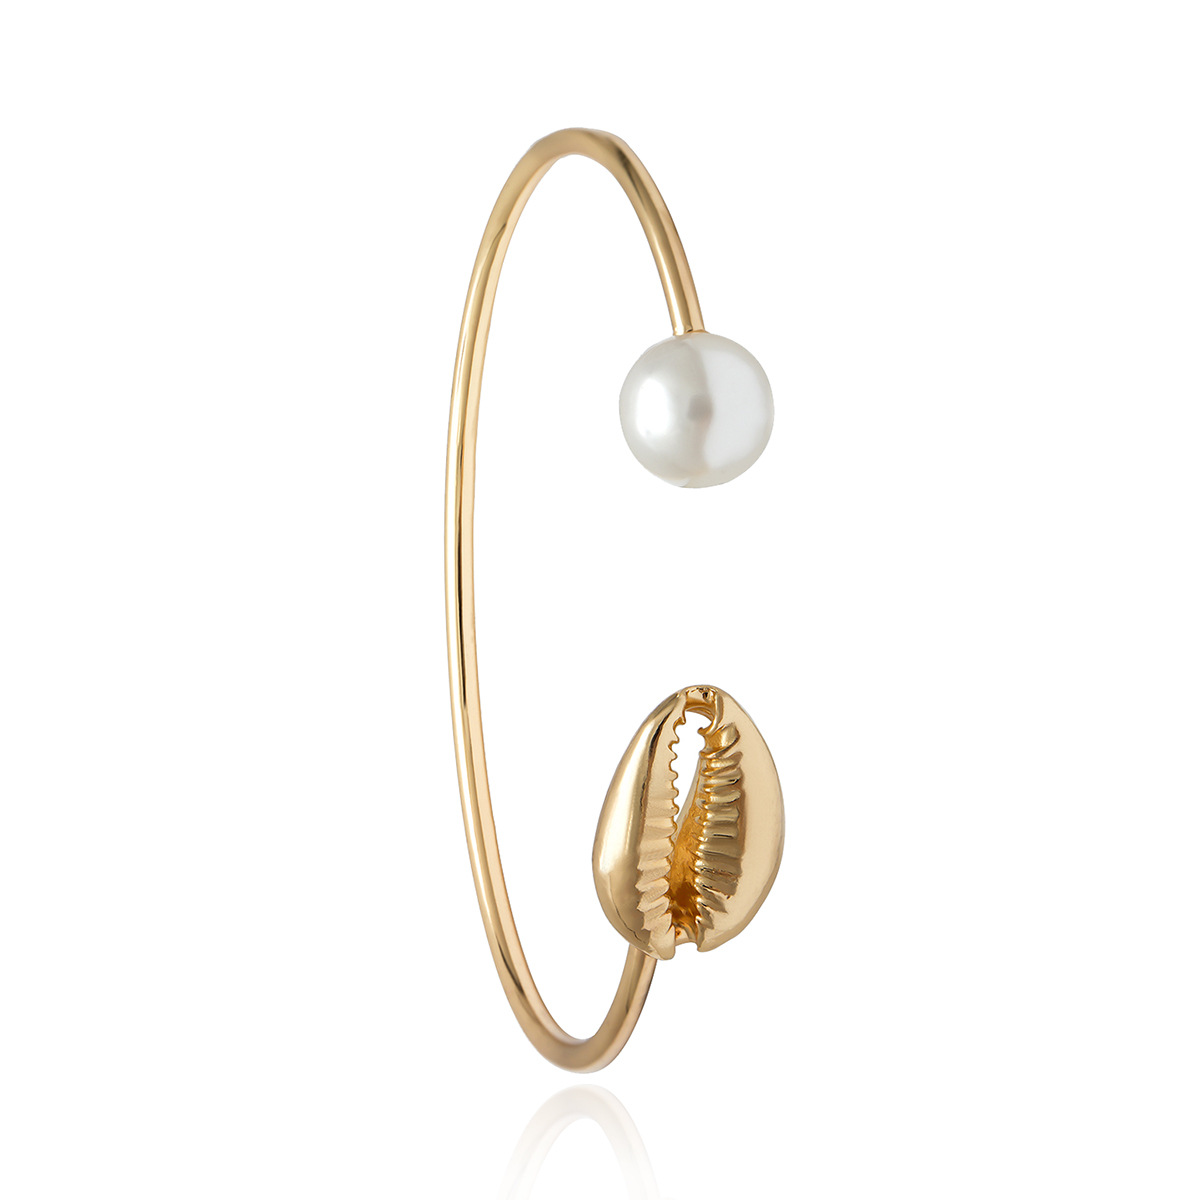 Gold Color Cowrie Shell Bracelets for Women Pearl Beads Charm Cuff Opening Bracelet Bohemian Beach Jewelry Mujer Pulseras 4